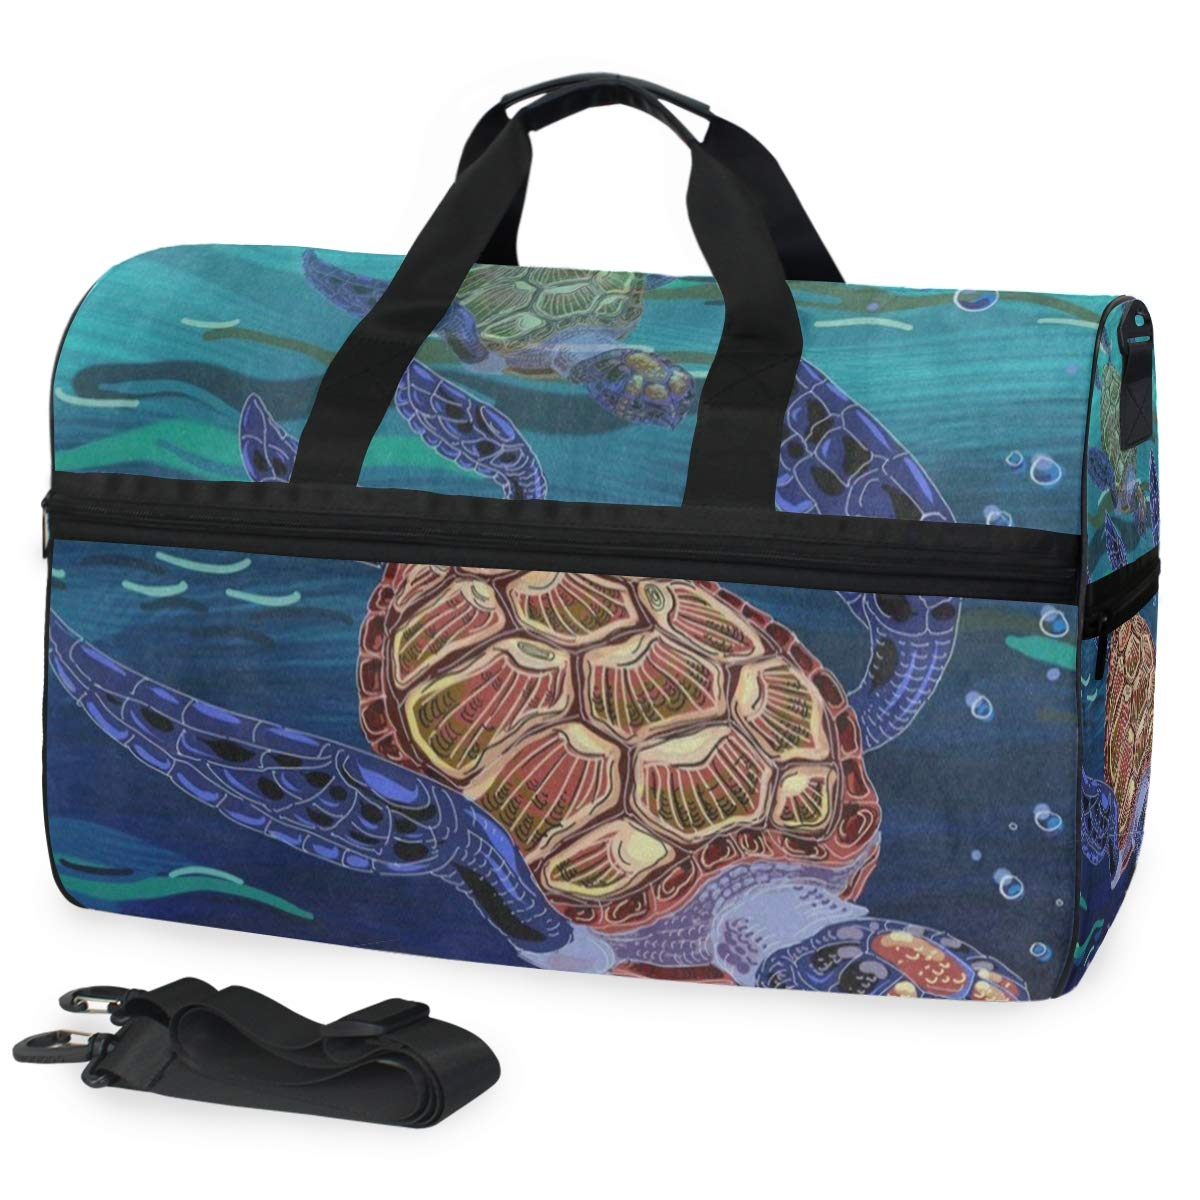 Colored Turtle Ocean Sea Large Canvas shoulder bag with Shoe Compartment Travel Tote Luggage Weekender Duffle Bag